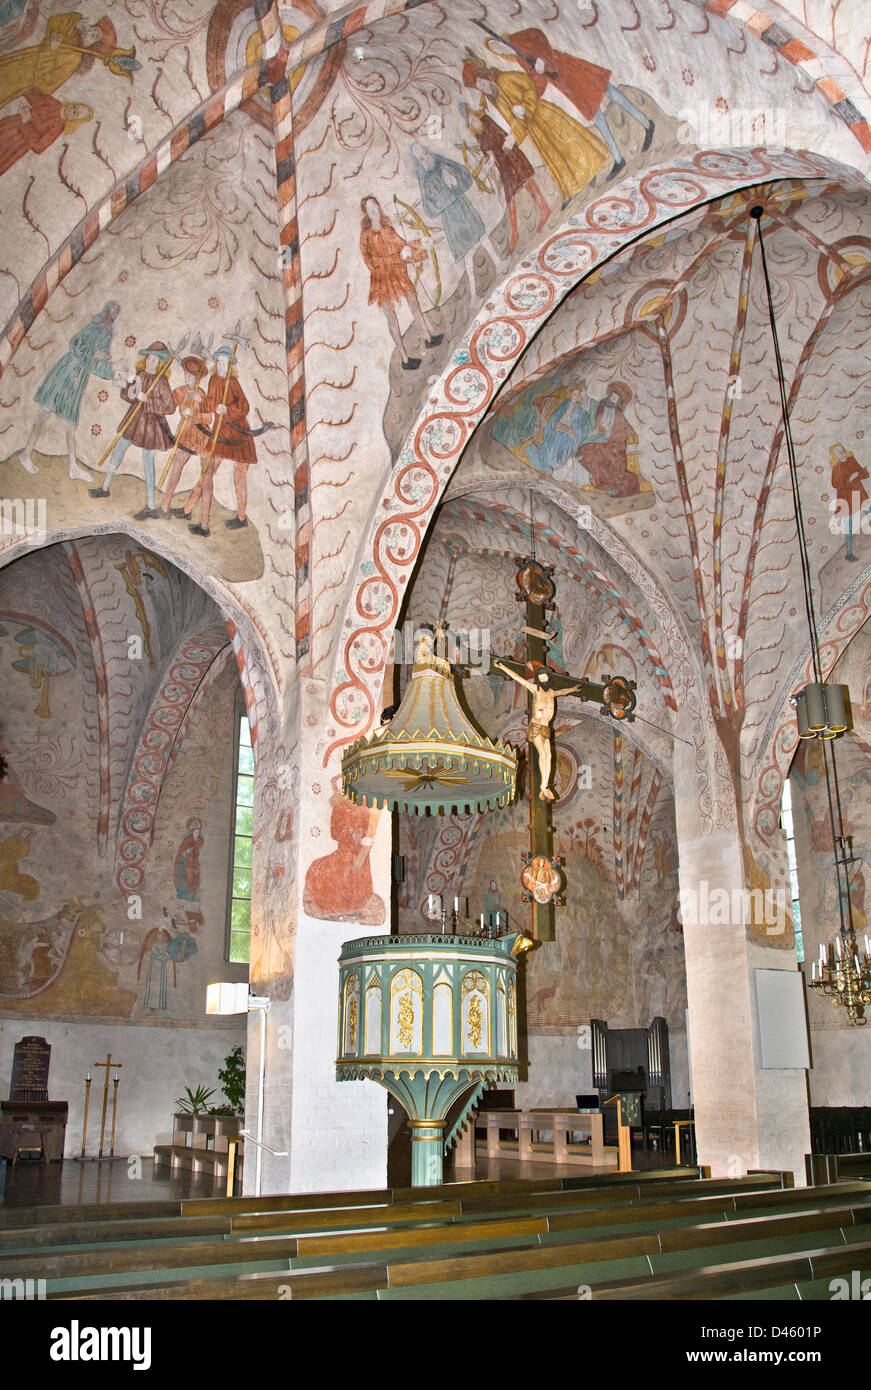 Finland, Southern Finland, Lohja, Pyhän Laurin kirkko, interior view of the 15th century Gothic St. Lawrence - Stock Image